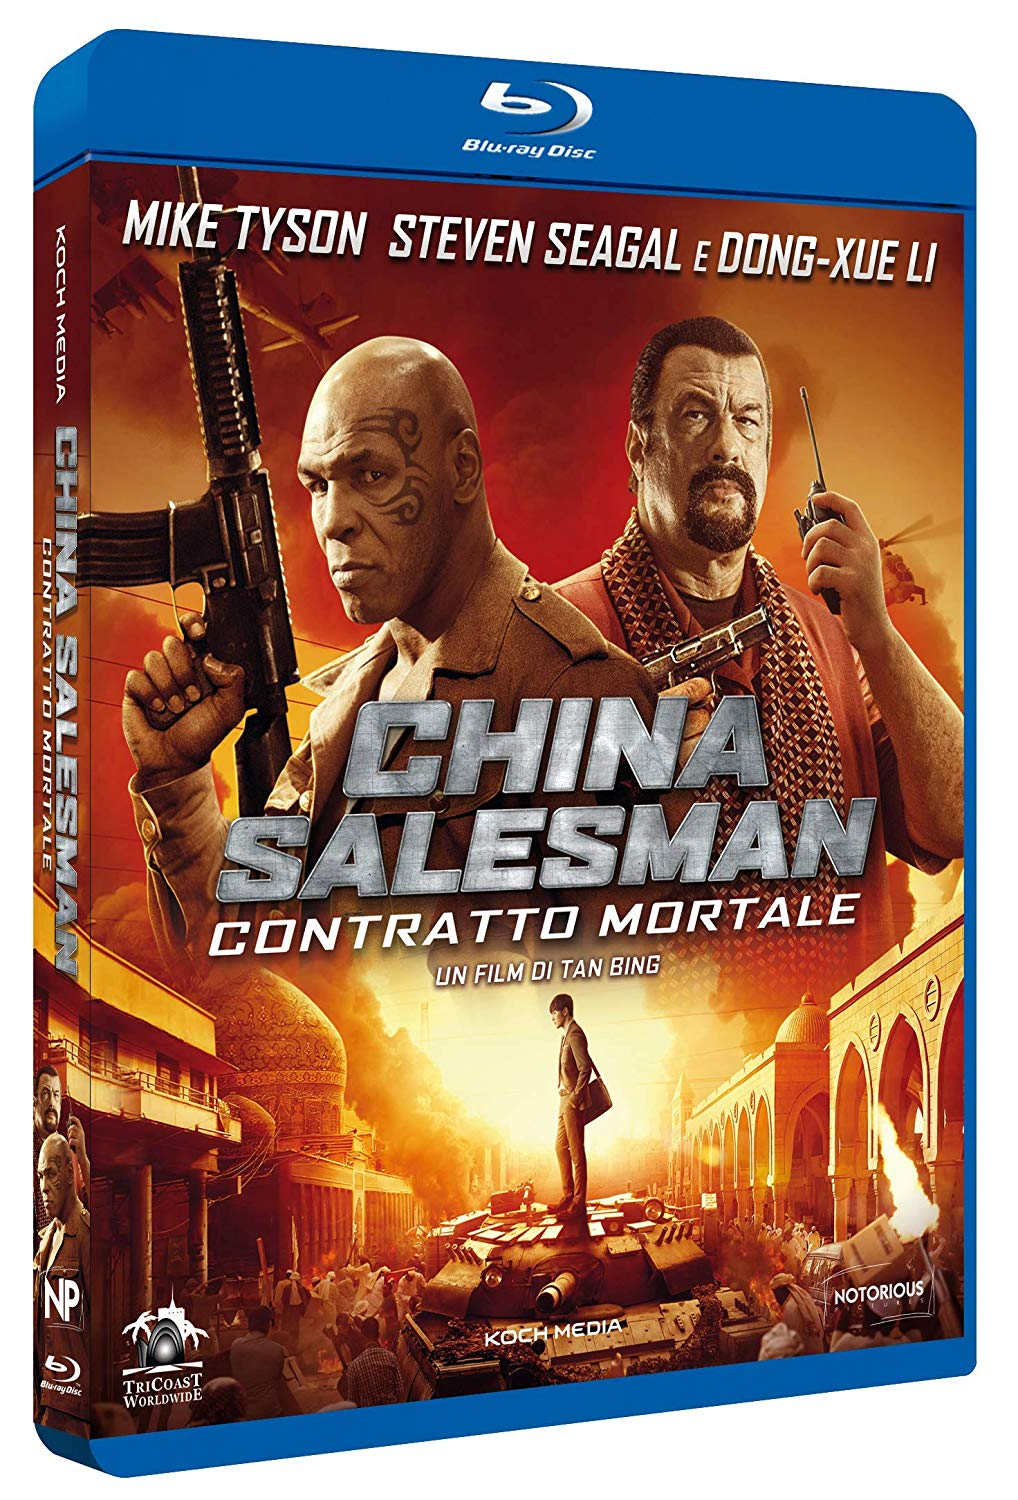 CHINA SALESMAN - CONTRATTO MORTALE - BLU RAY